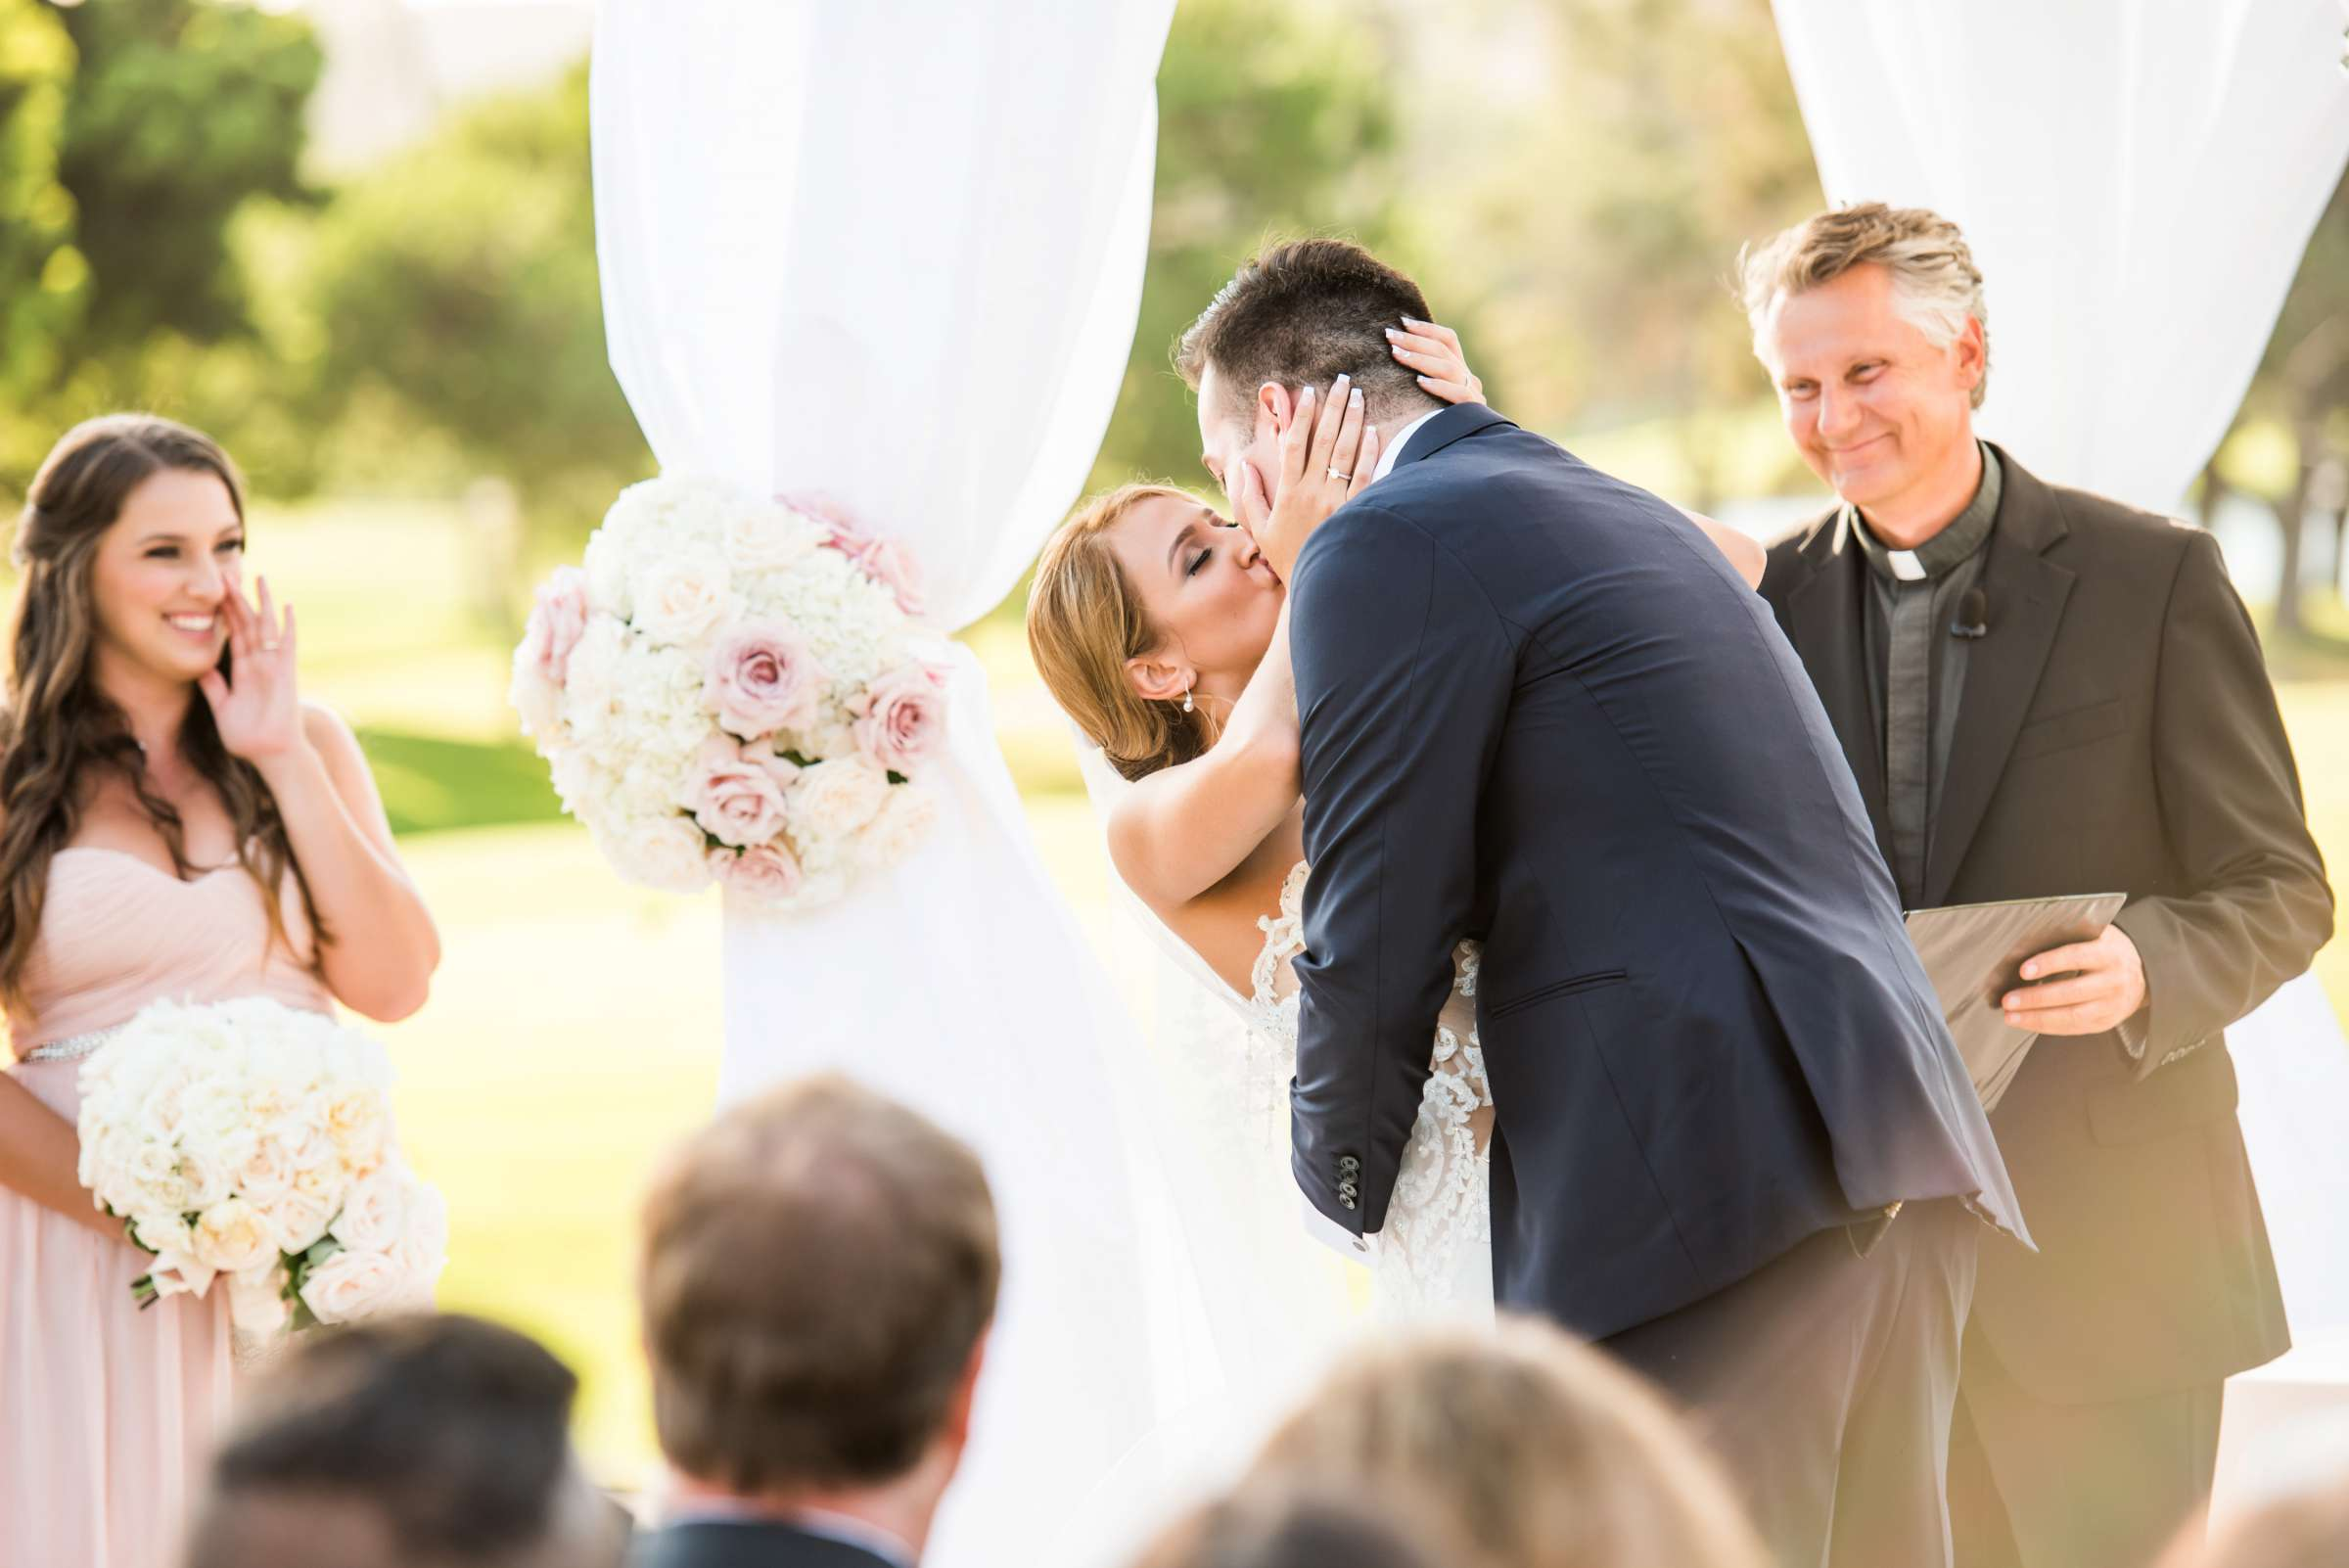 Fairbanks Ranch Country Club Wedding coordinated by Monarch Weddings, Gabriella and Kyle Wedding Photo #94 by True Photography